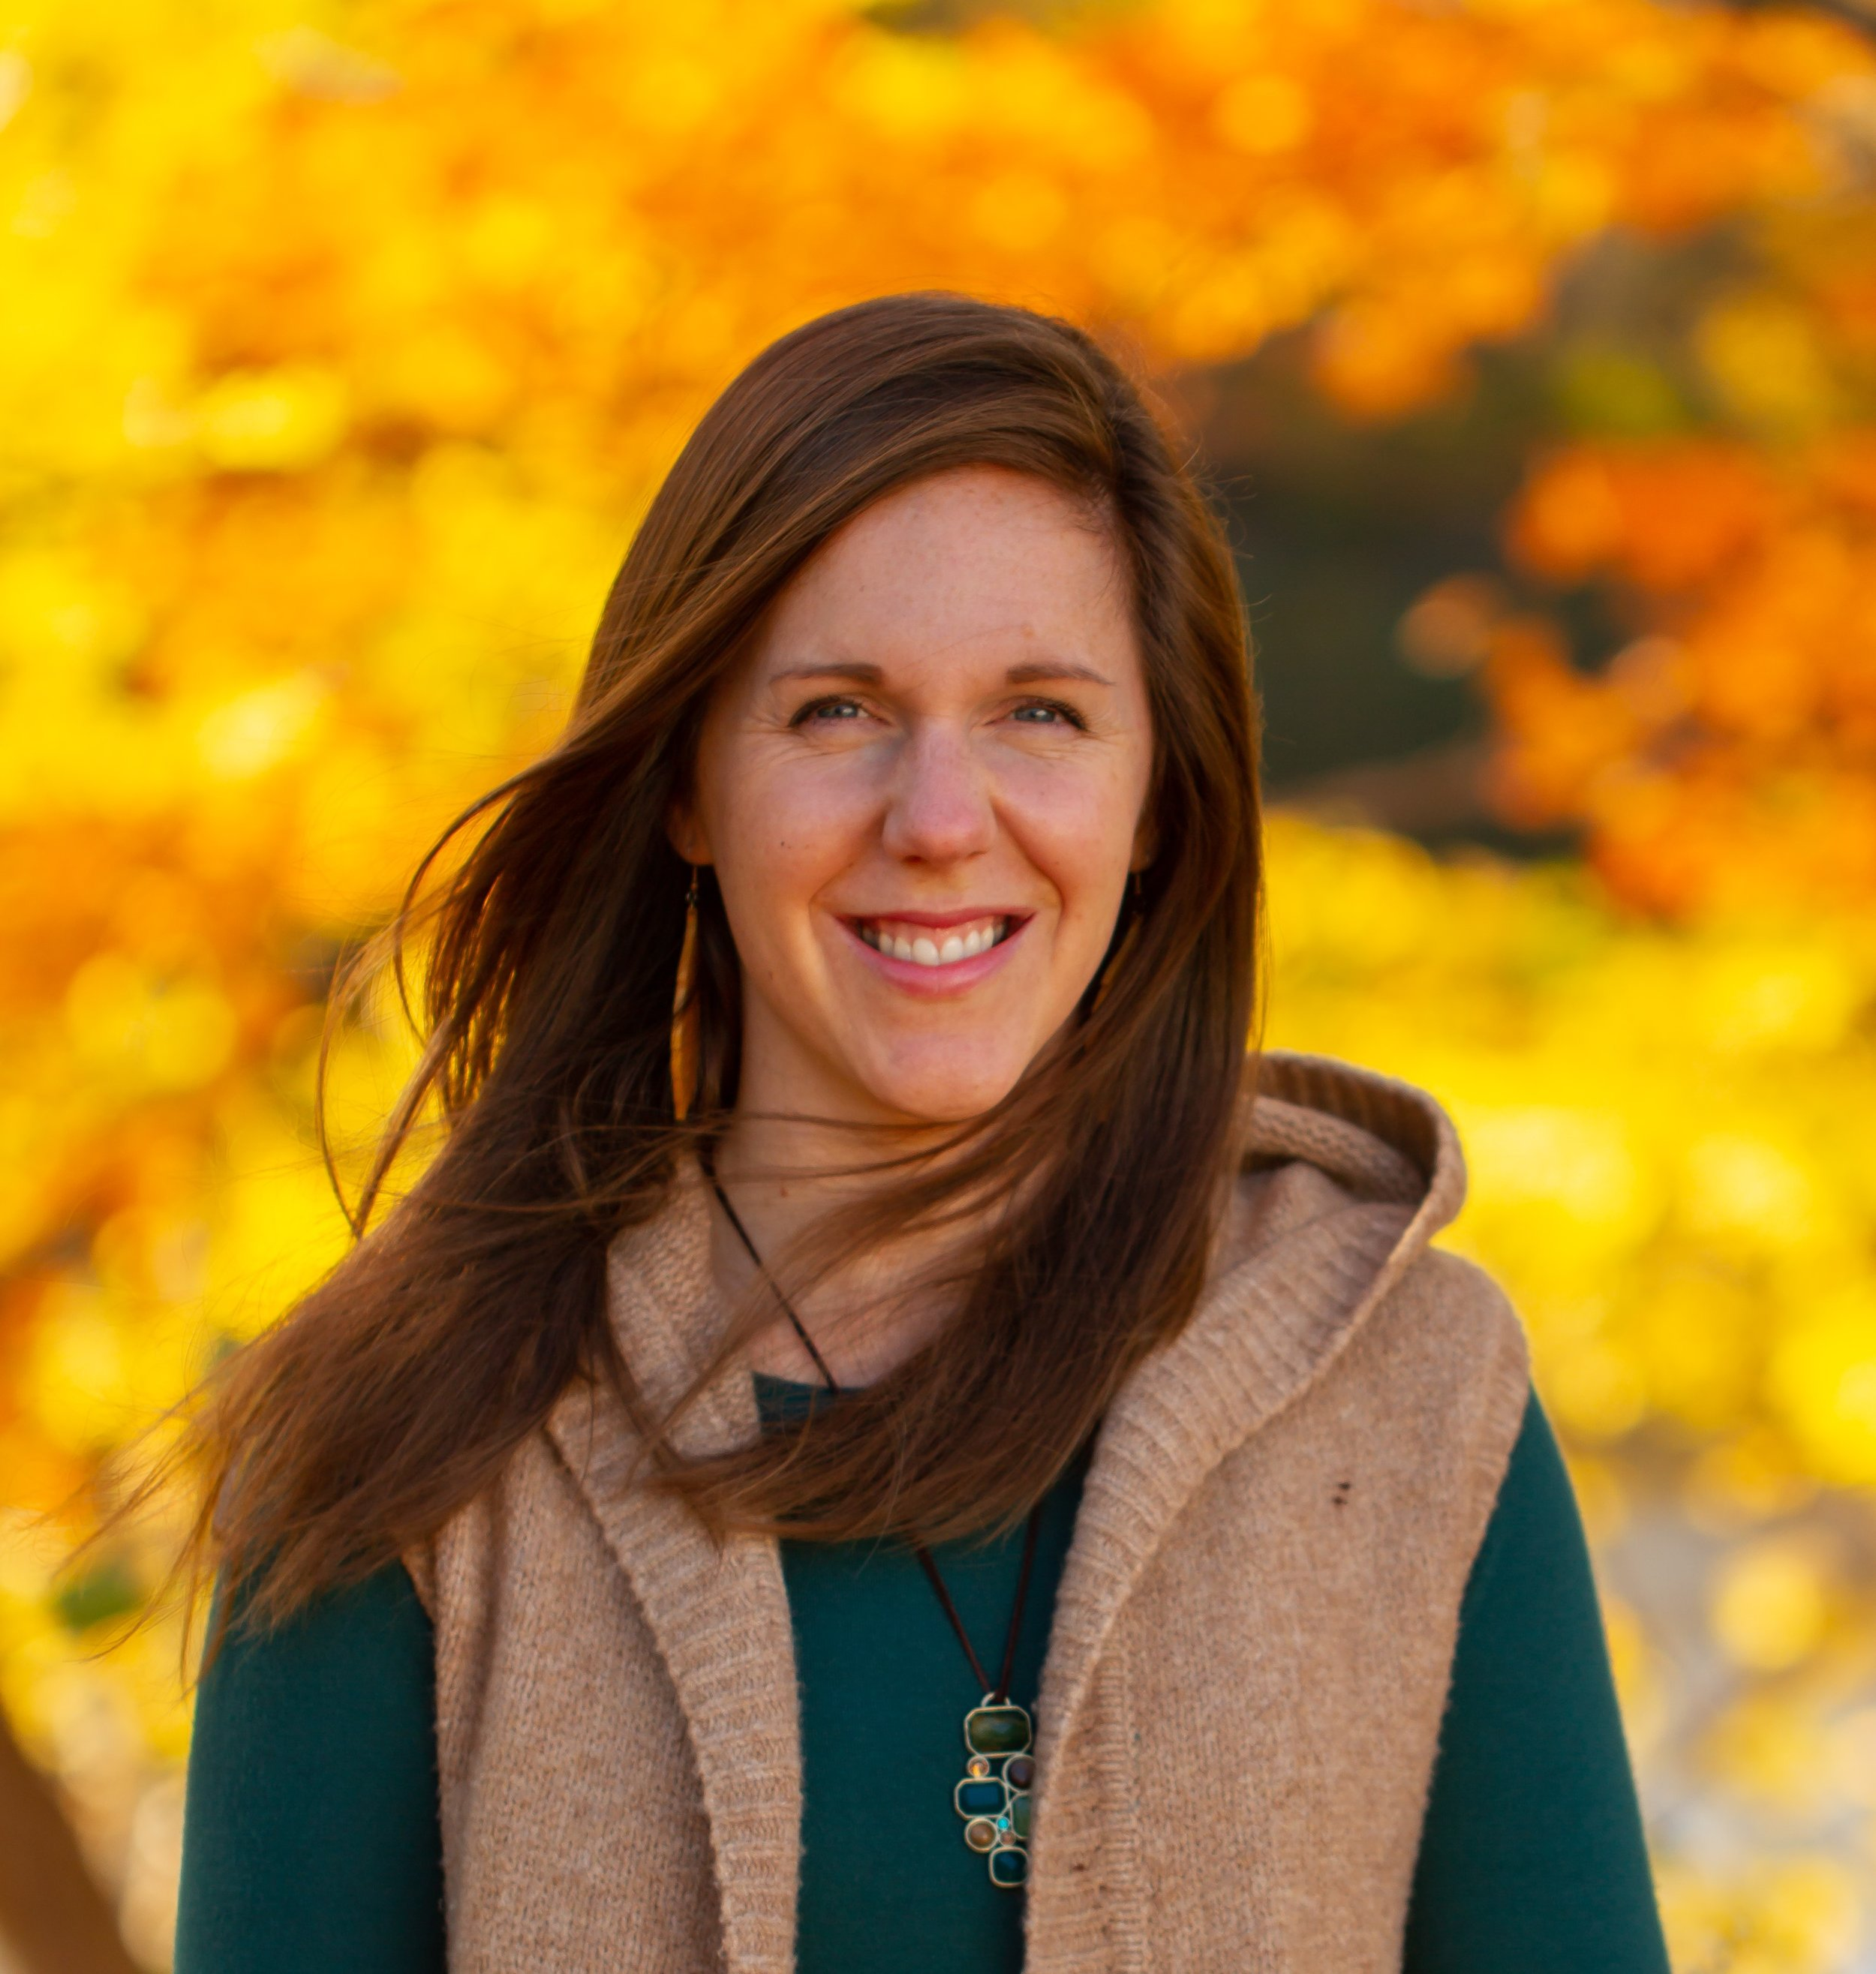 Kate Lally - Psychotherapist, Spiritual Coach & Intuitive Channel; Worcester, MA